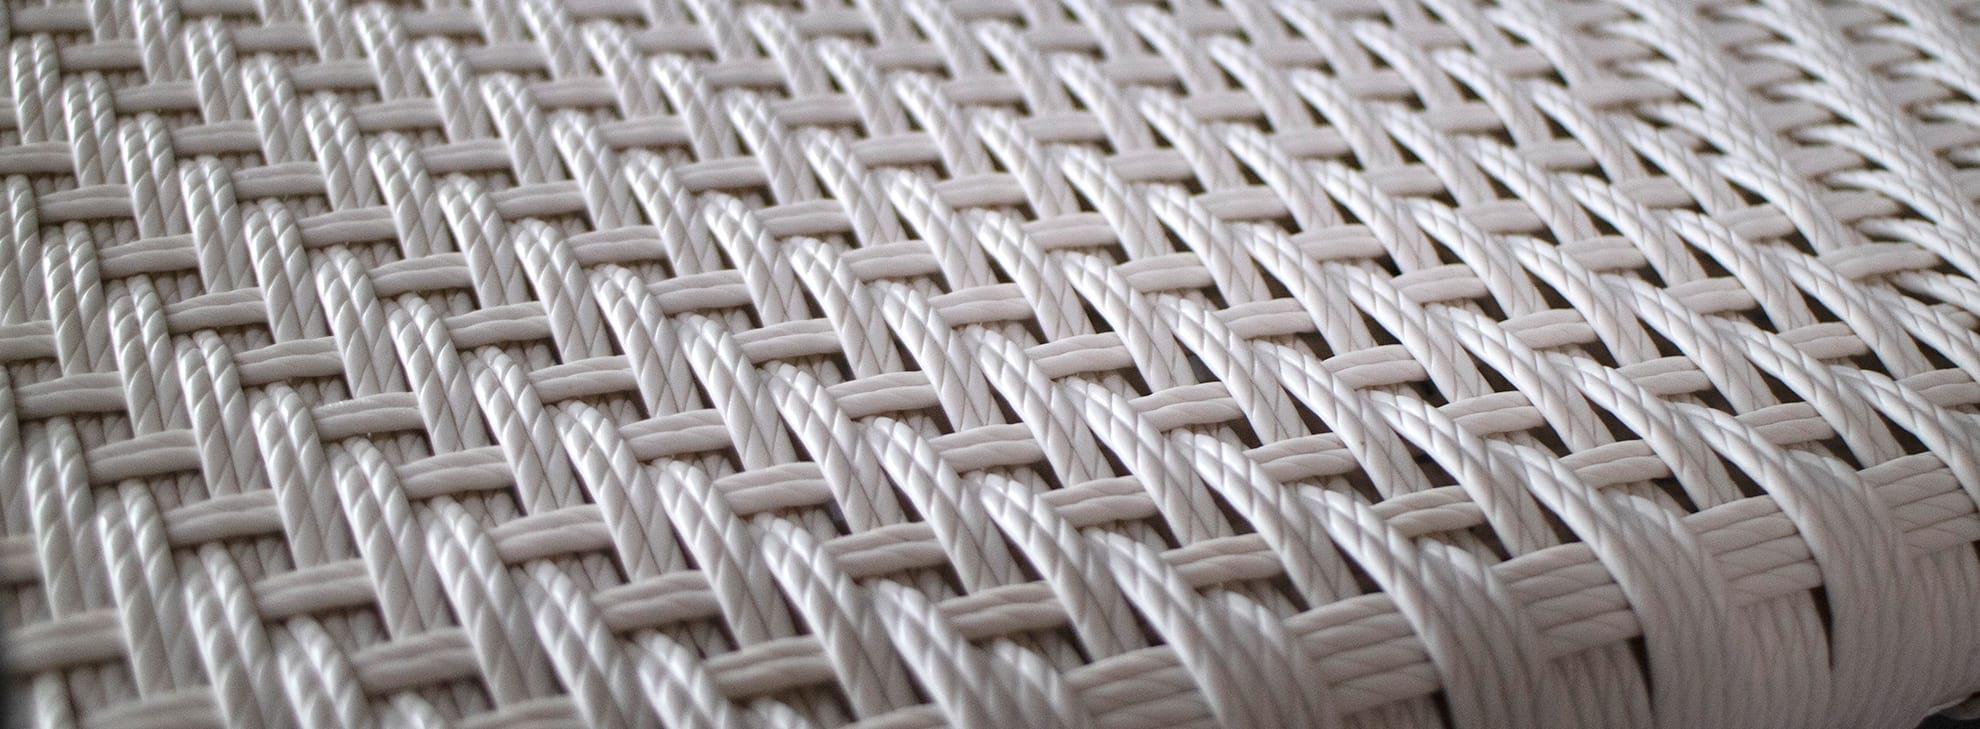 Closeup of Wicker material